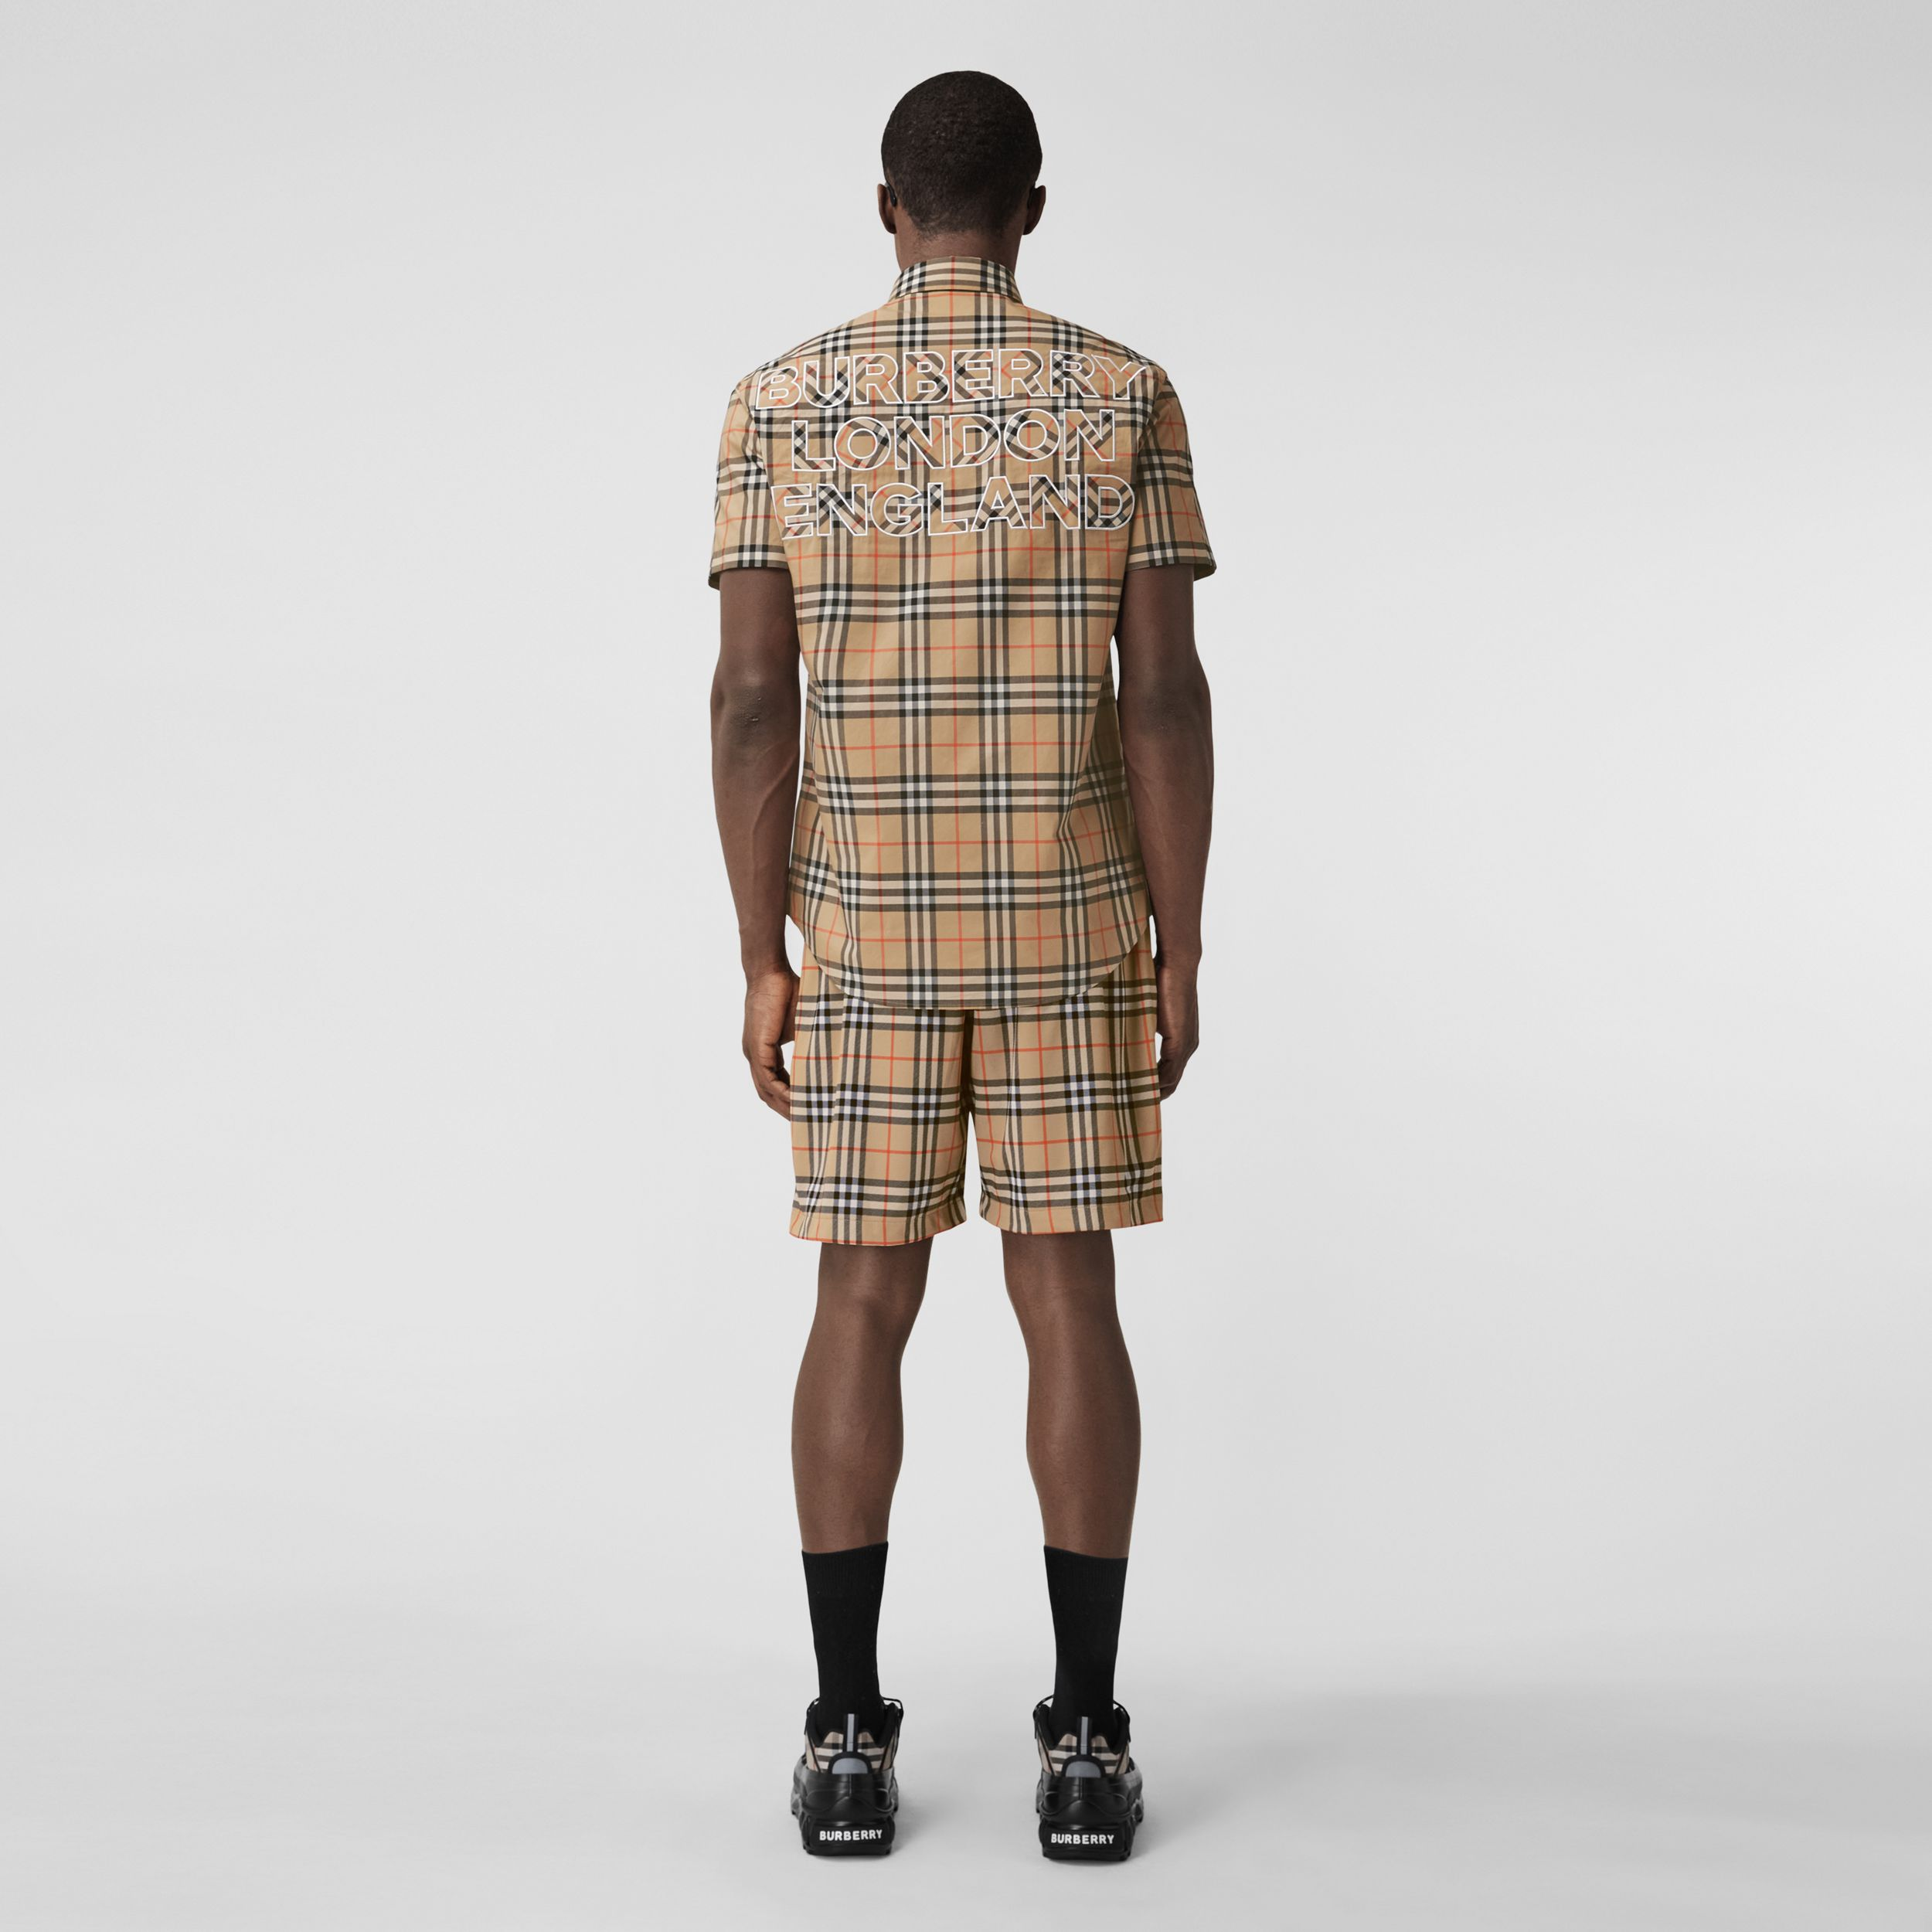 Short-sleeve Logo Appliqué Vintage Check Shirt in Archive Beige - Men | Burberry - 3